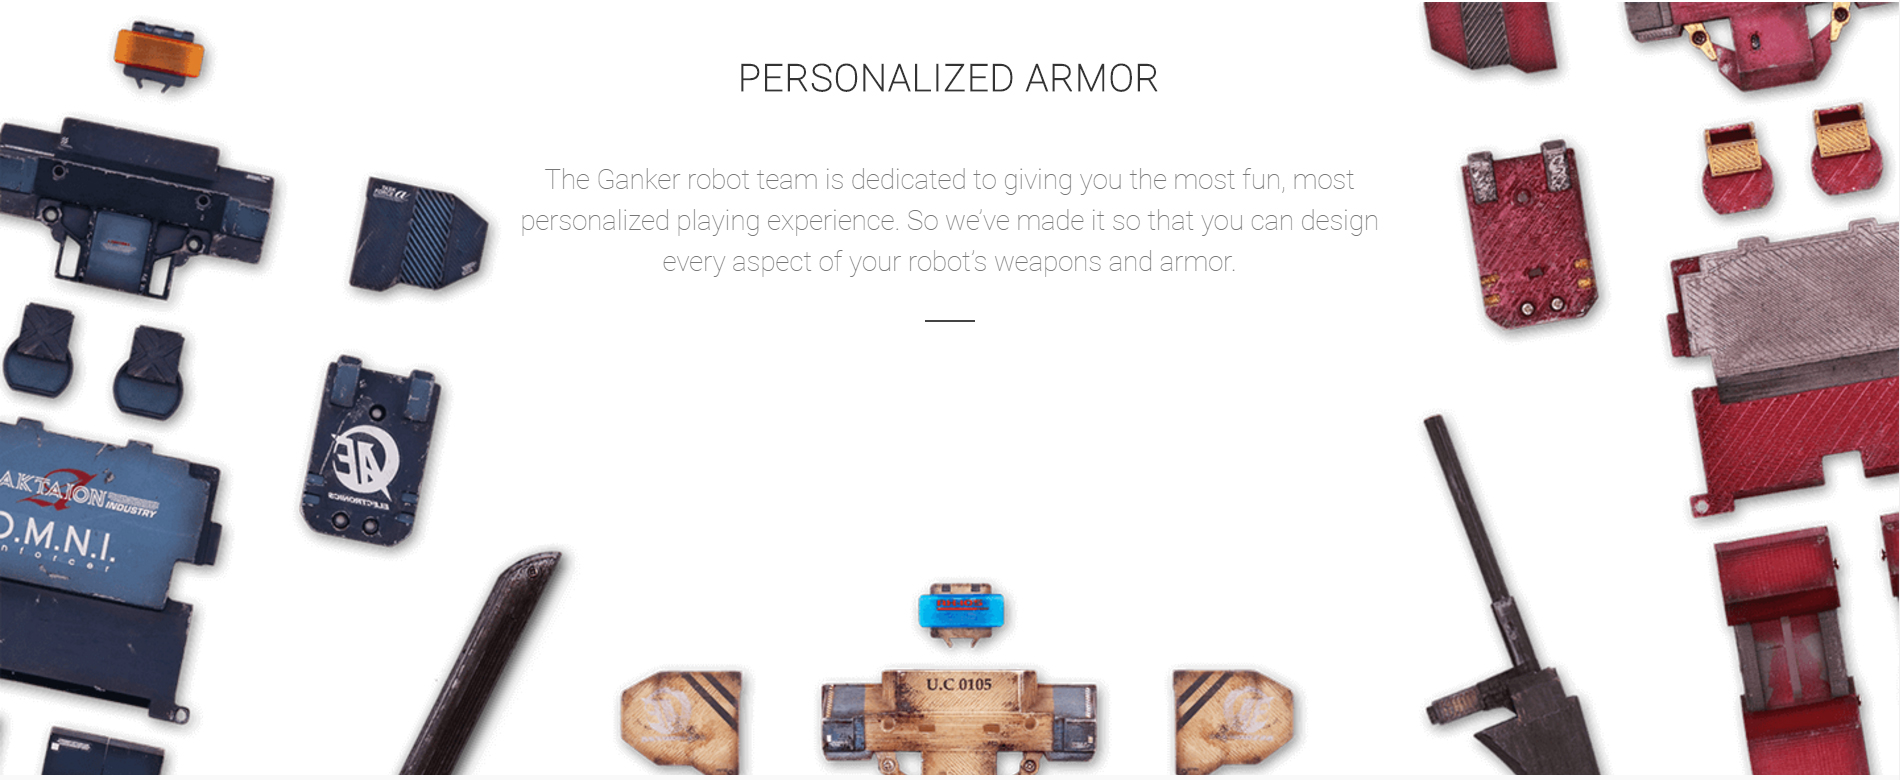 Fighting Combat Robot Personalized Armor